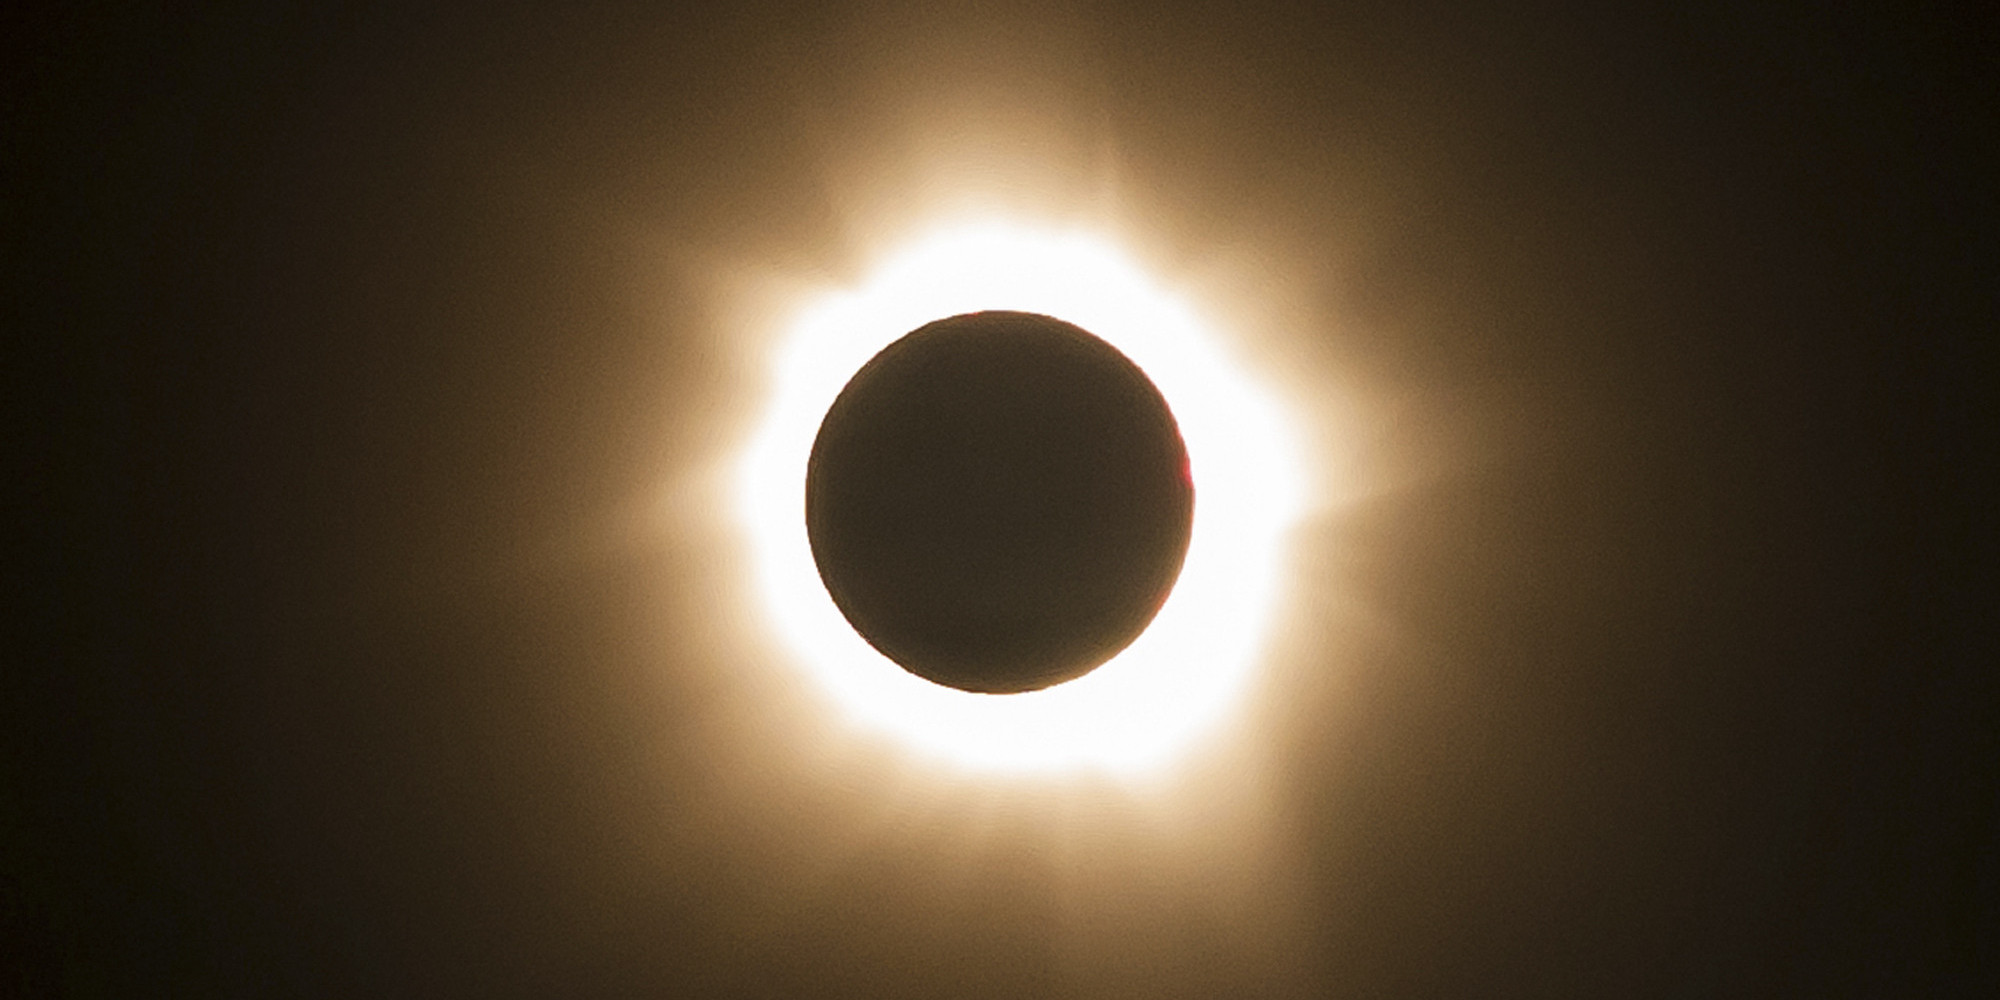 Amazing Eclipse Pictures & Backgrounds